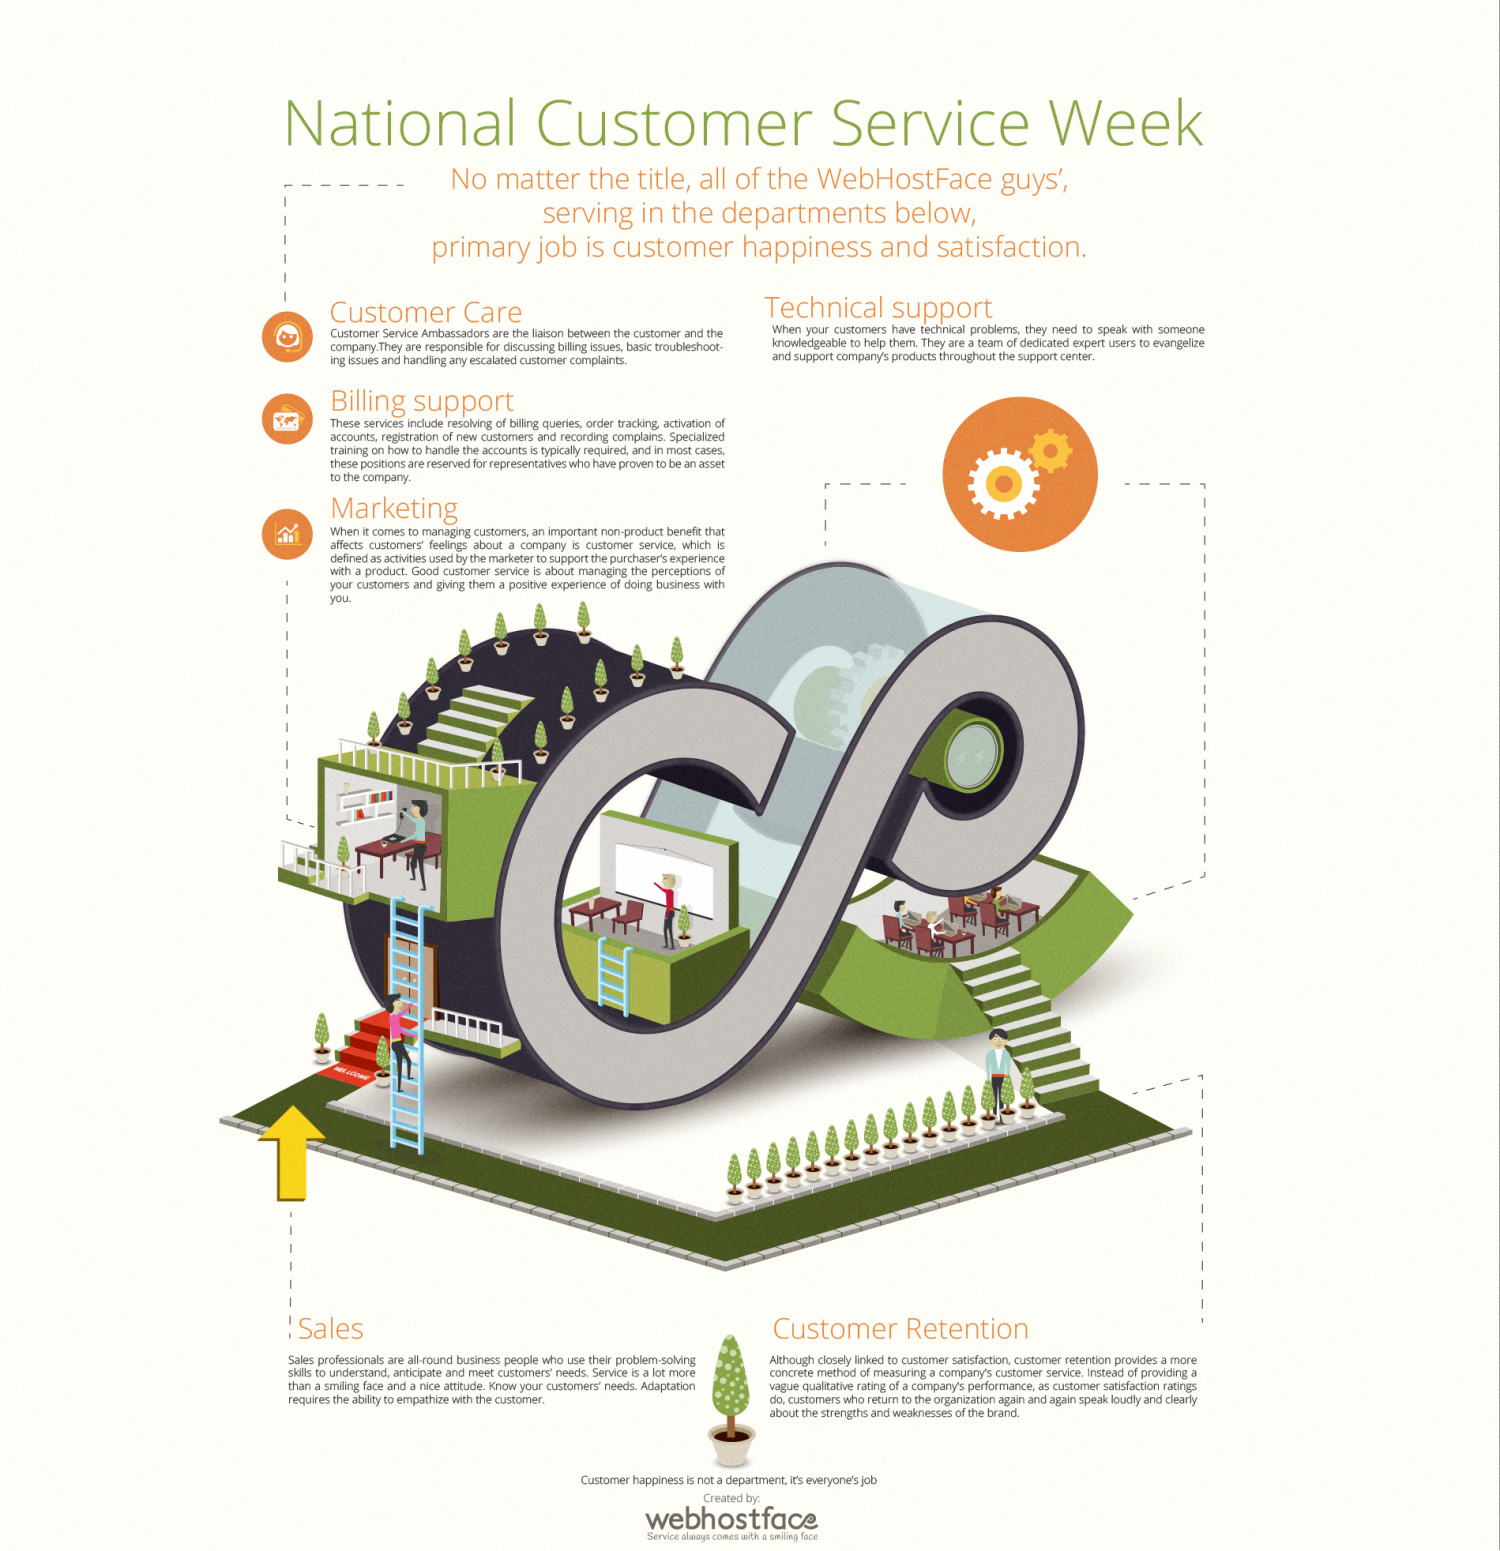 Customer Service Week @WebHostFace Infographic